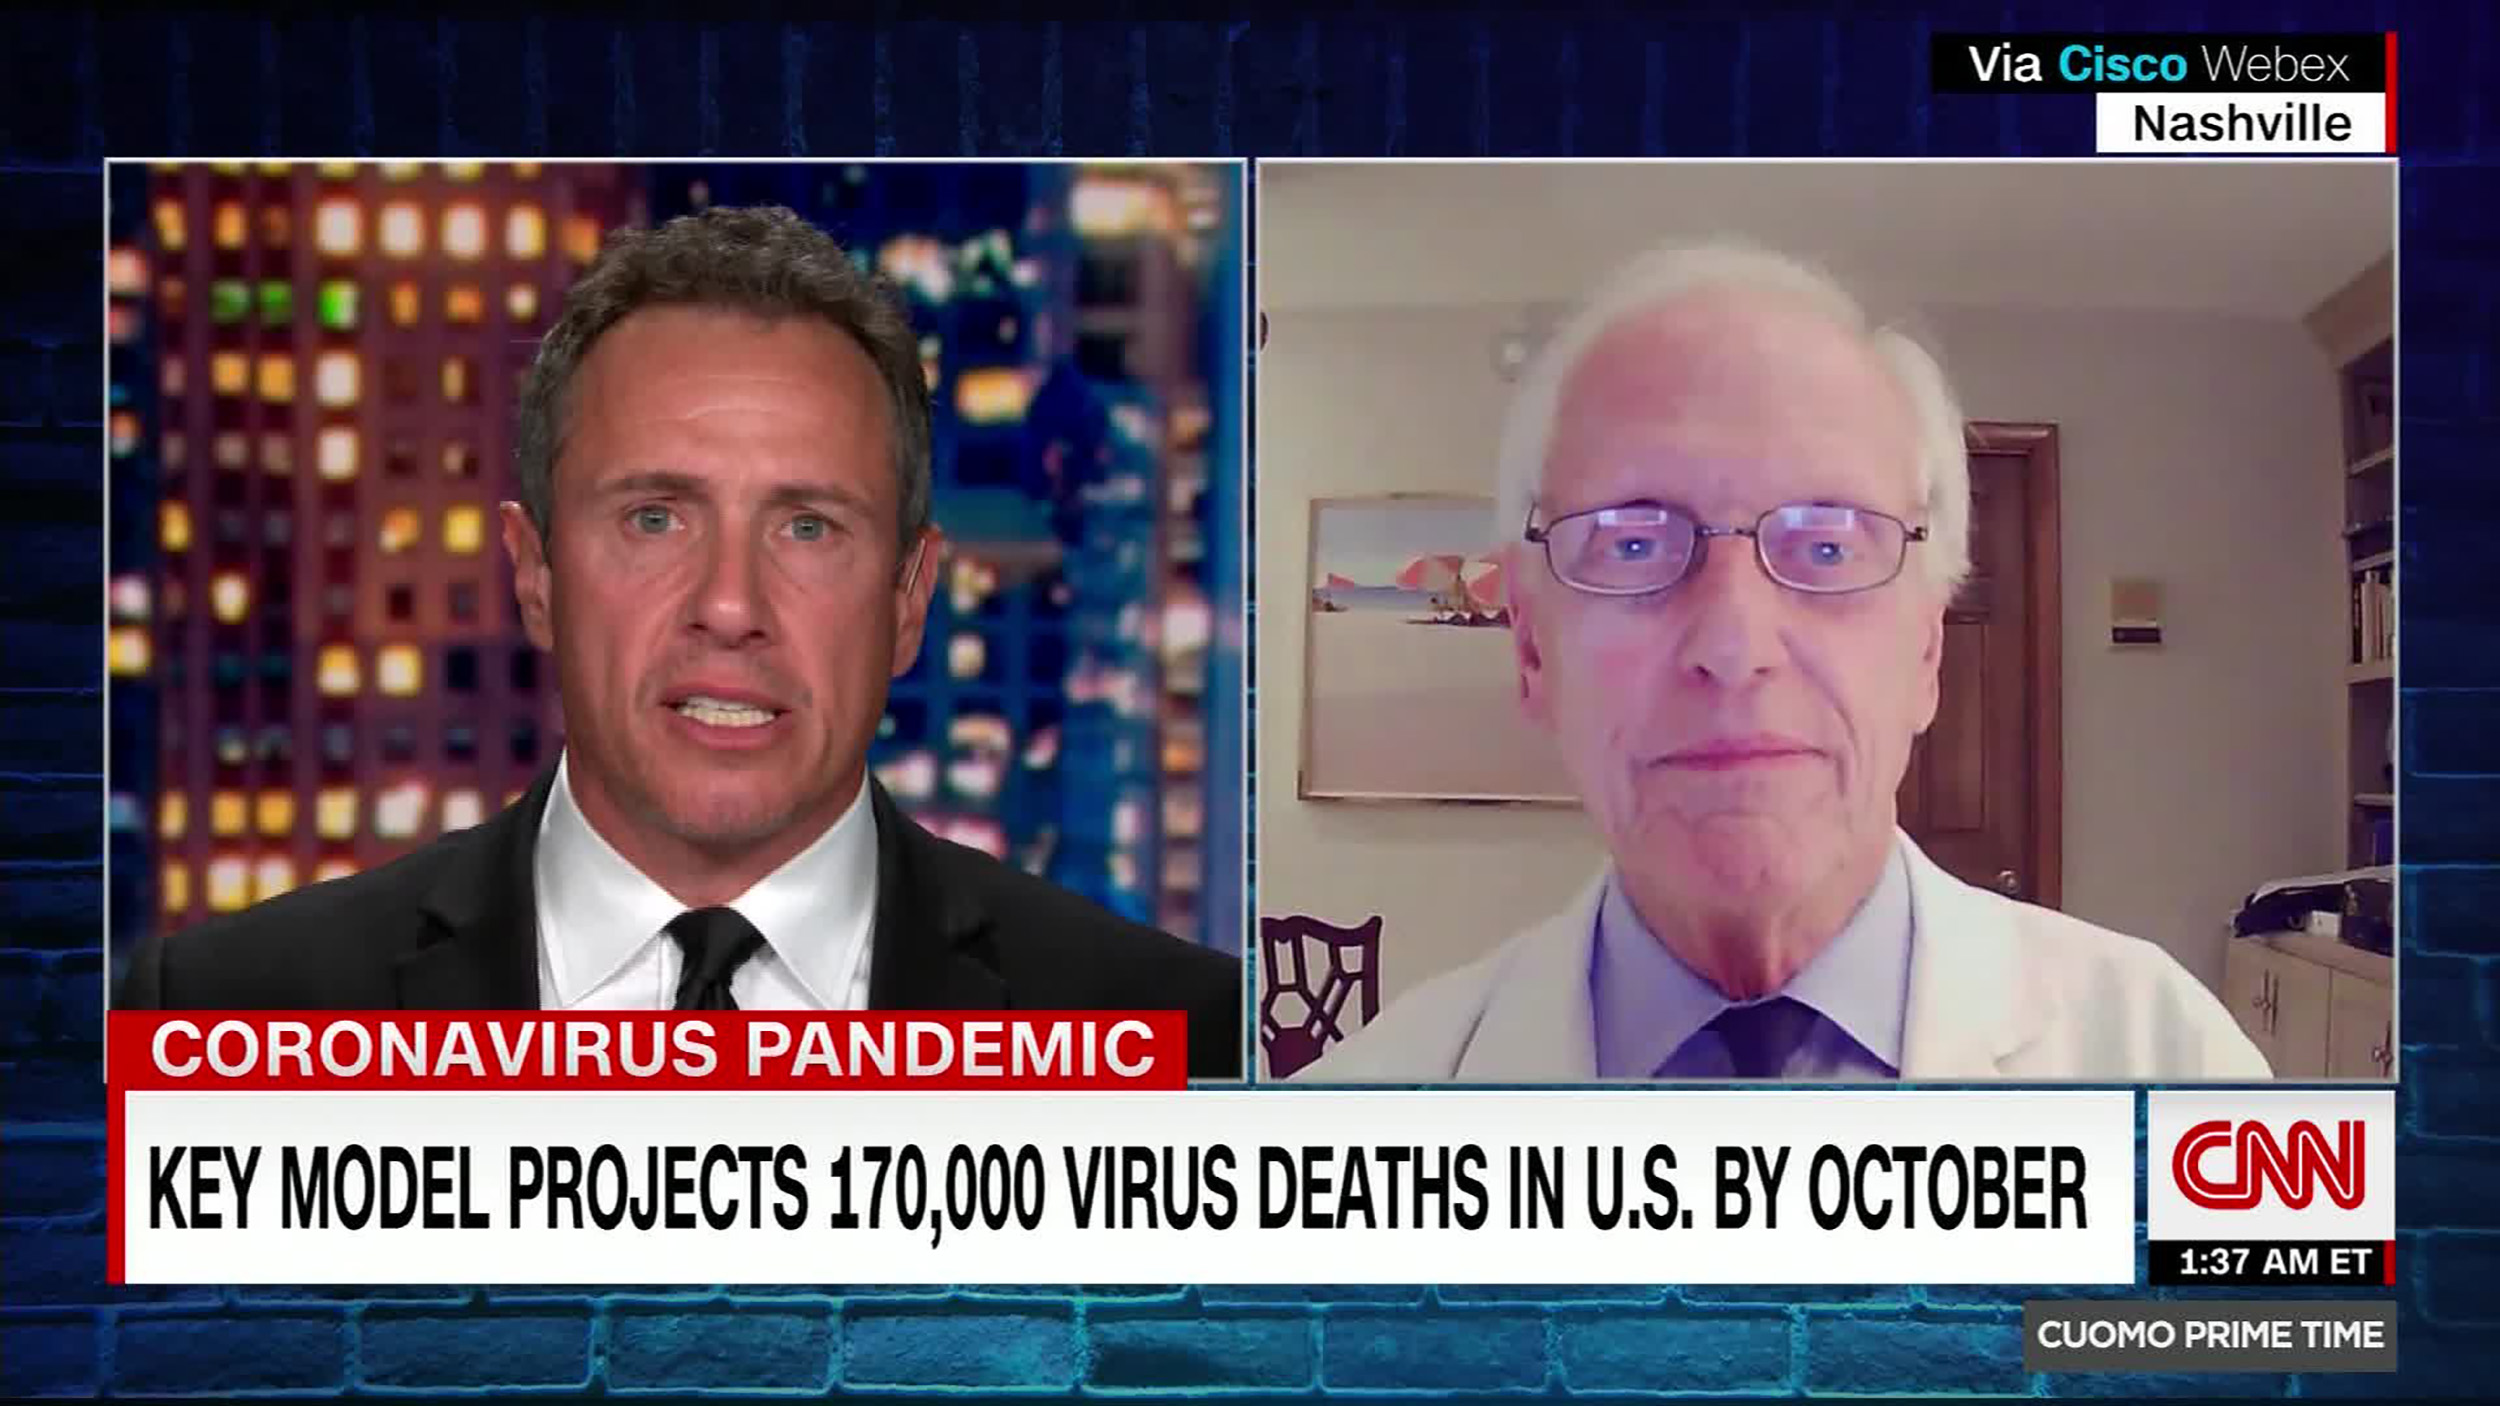 From left: CNN's Chris Cuomo and Dr. William Schaffner